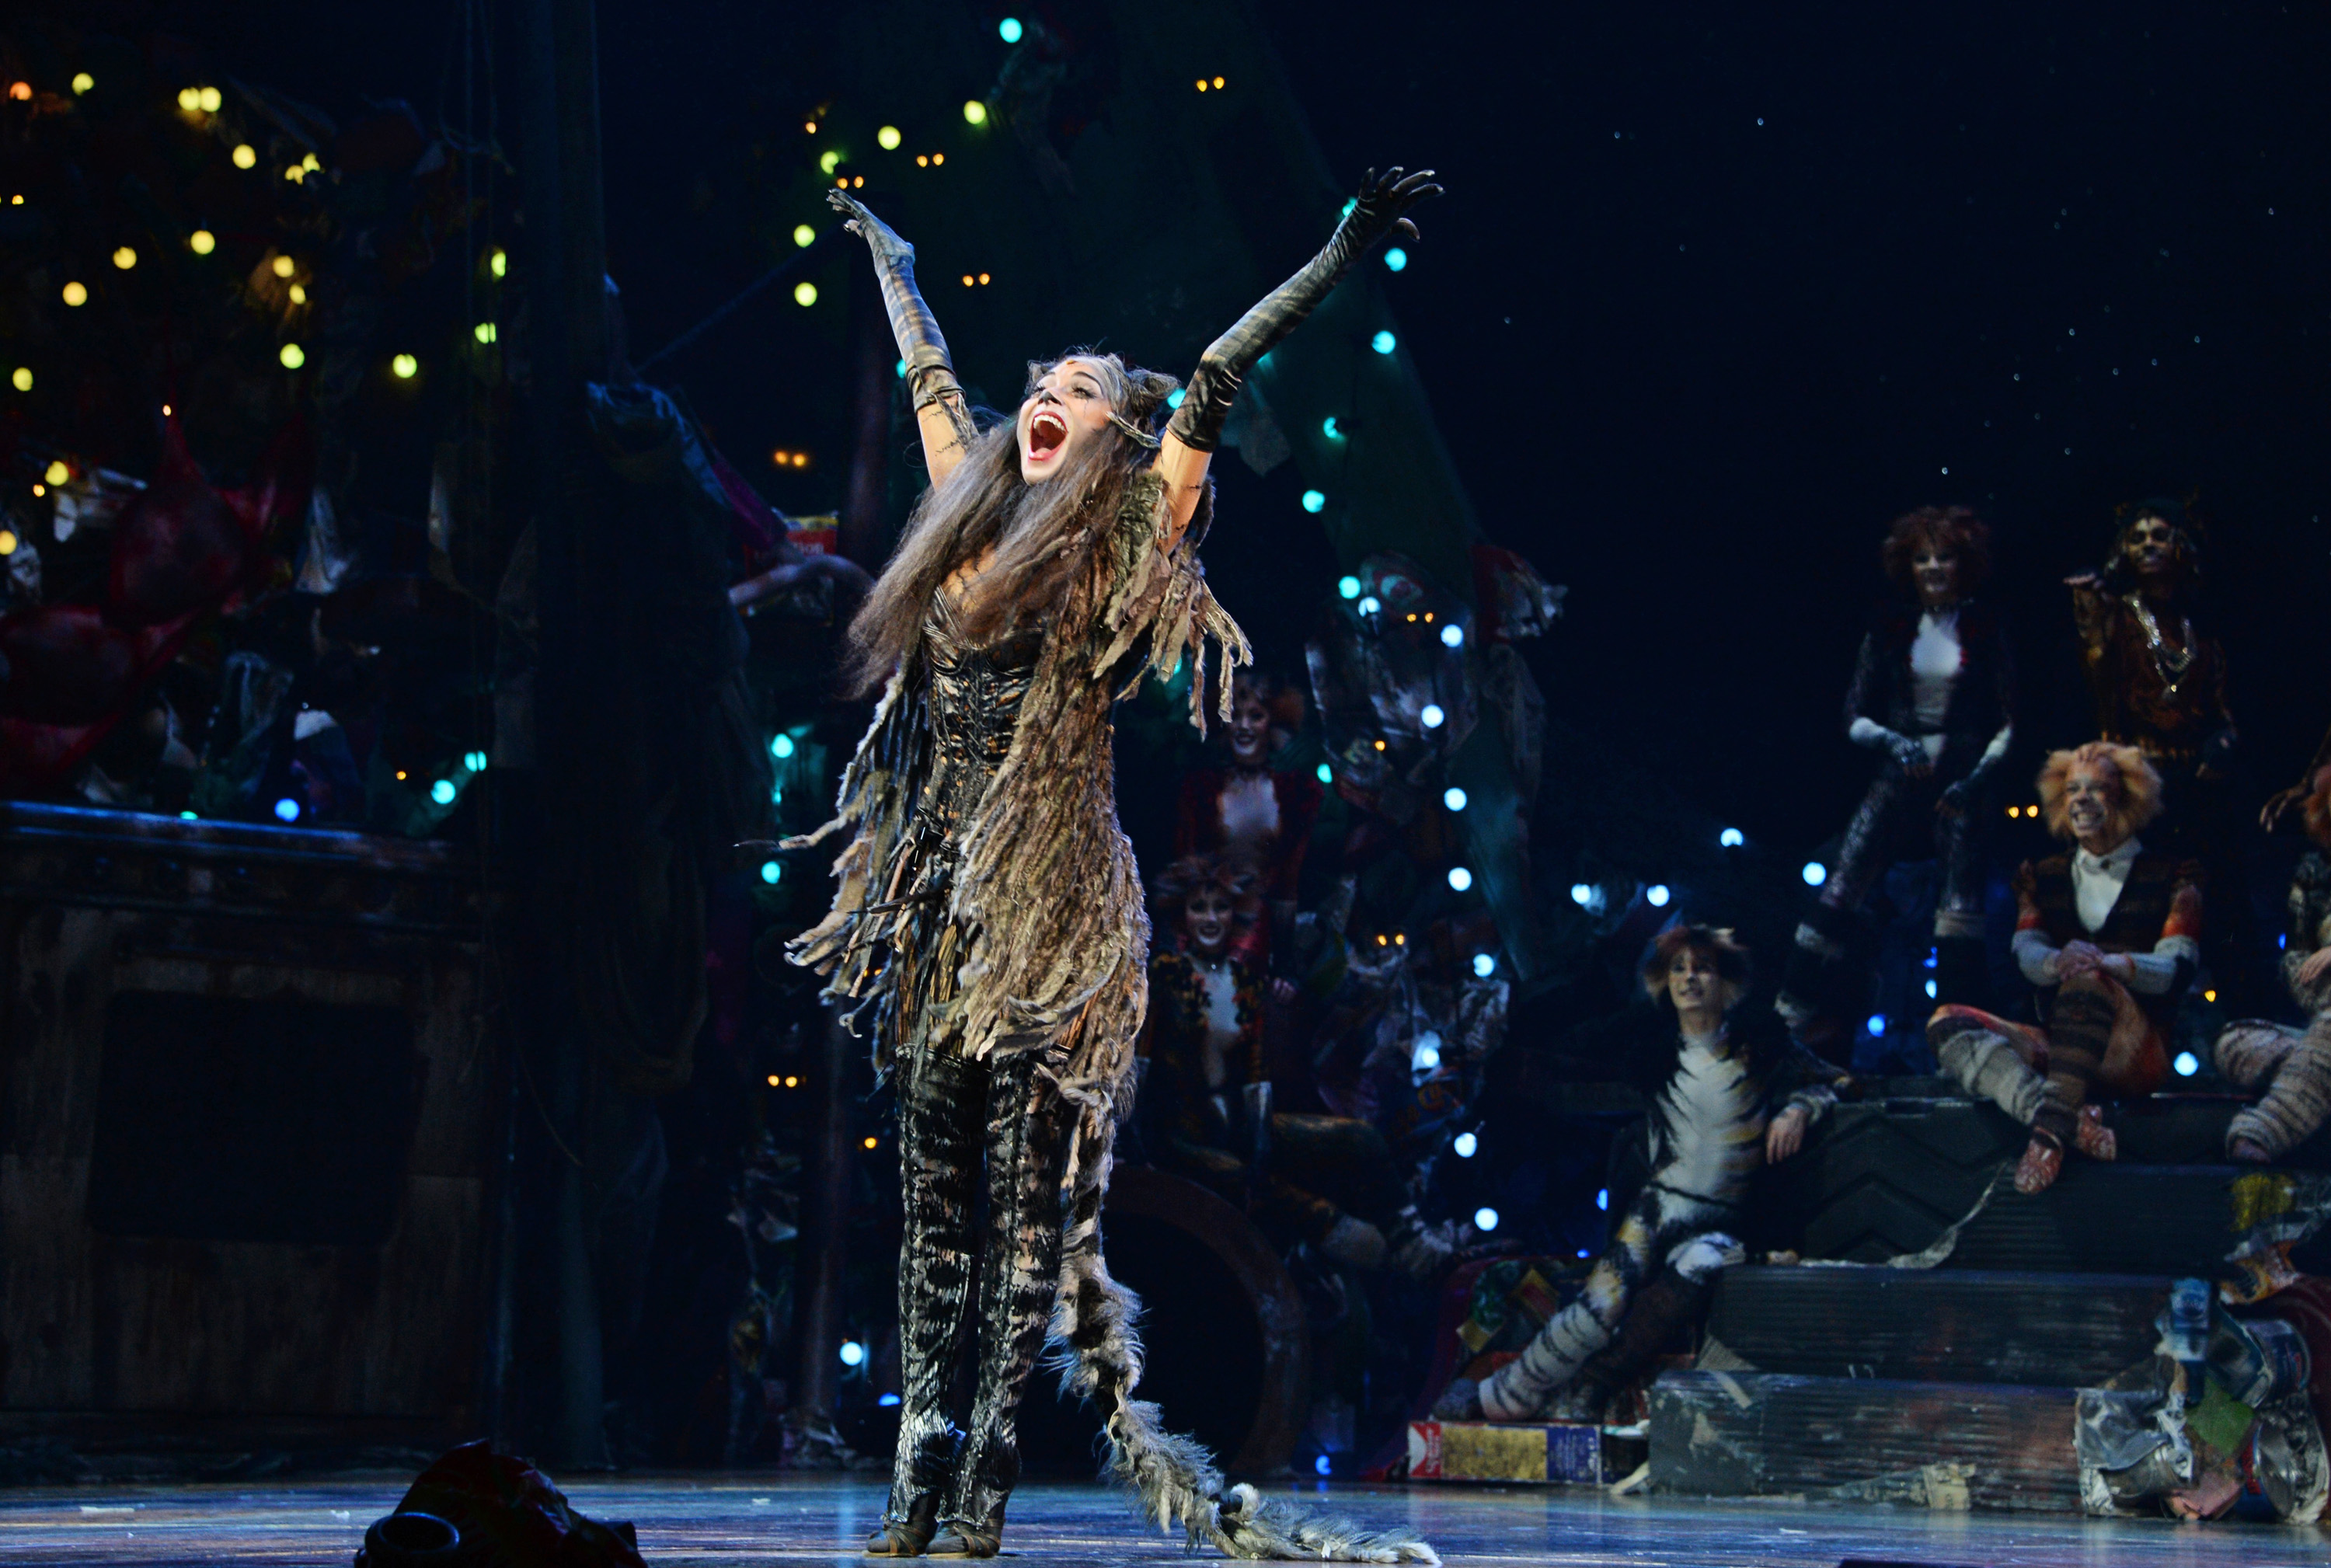 """LONDON, ENGLAND - DECEMBER 11:  Nicole Scherzinger bows at the curtain call during the press night performance of """"Cats"""" as Nicole Scherzinger joins the cast at the London Palladium on December 11, 2014 in London, England.  (Photo by David M. Benett/Getty Images)"""